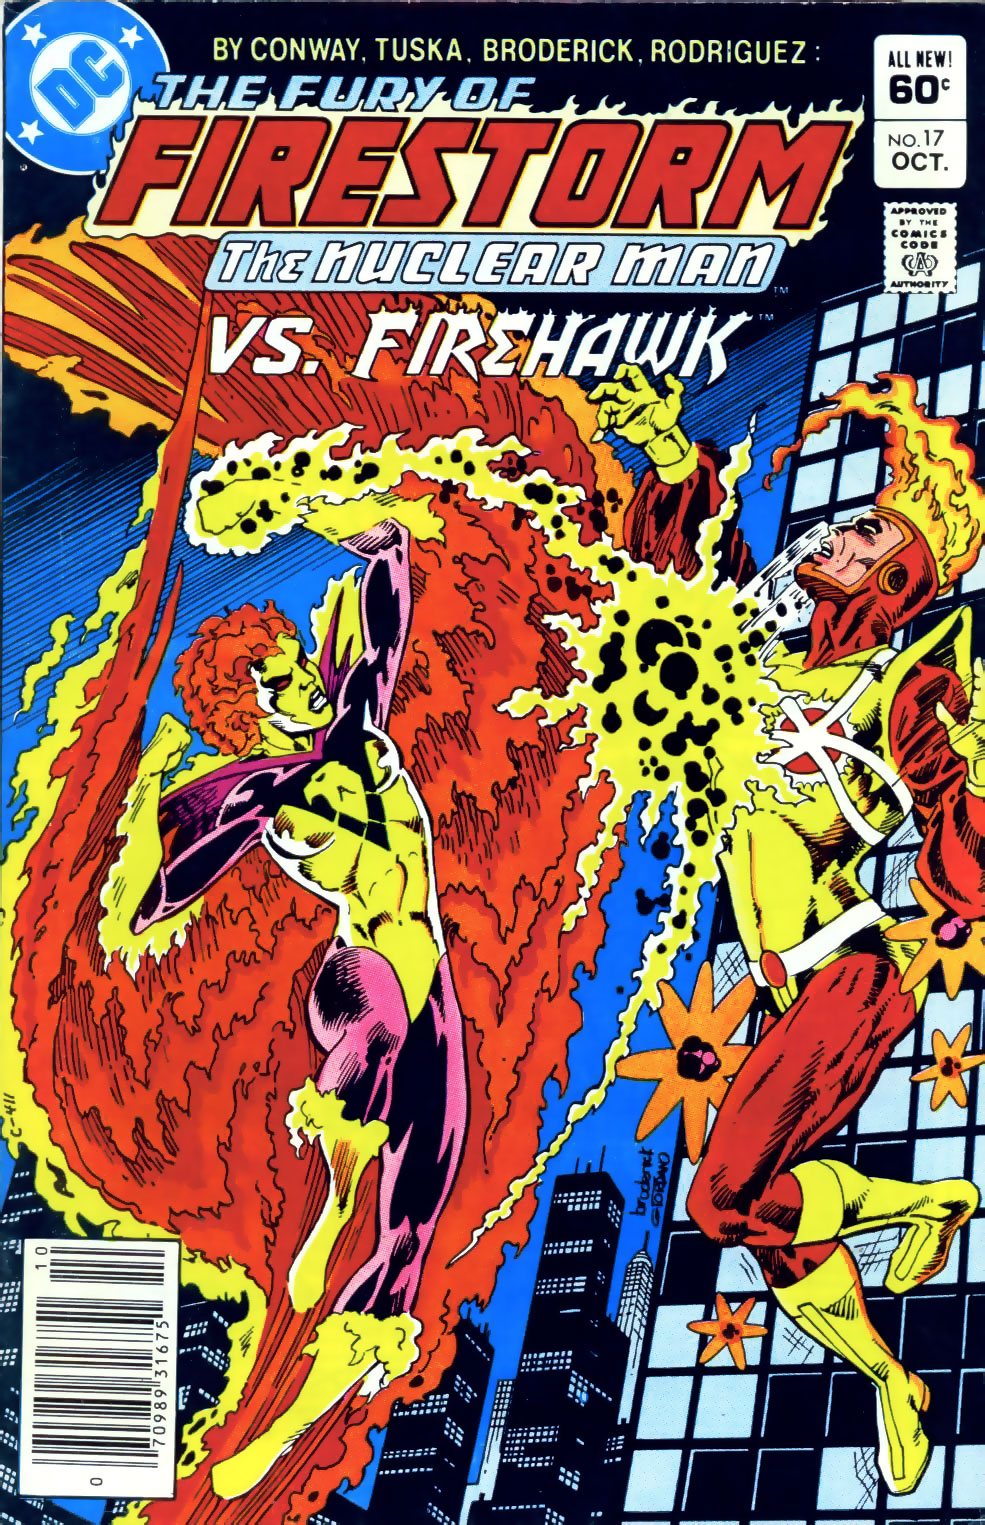 Fury of Firestorm #17 cover by Pat Broderick and Dick Giordano